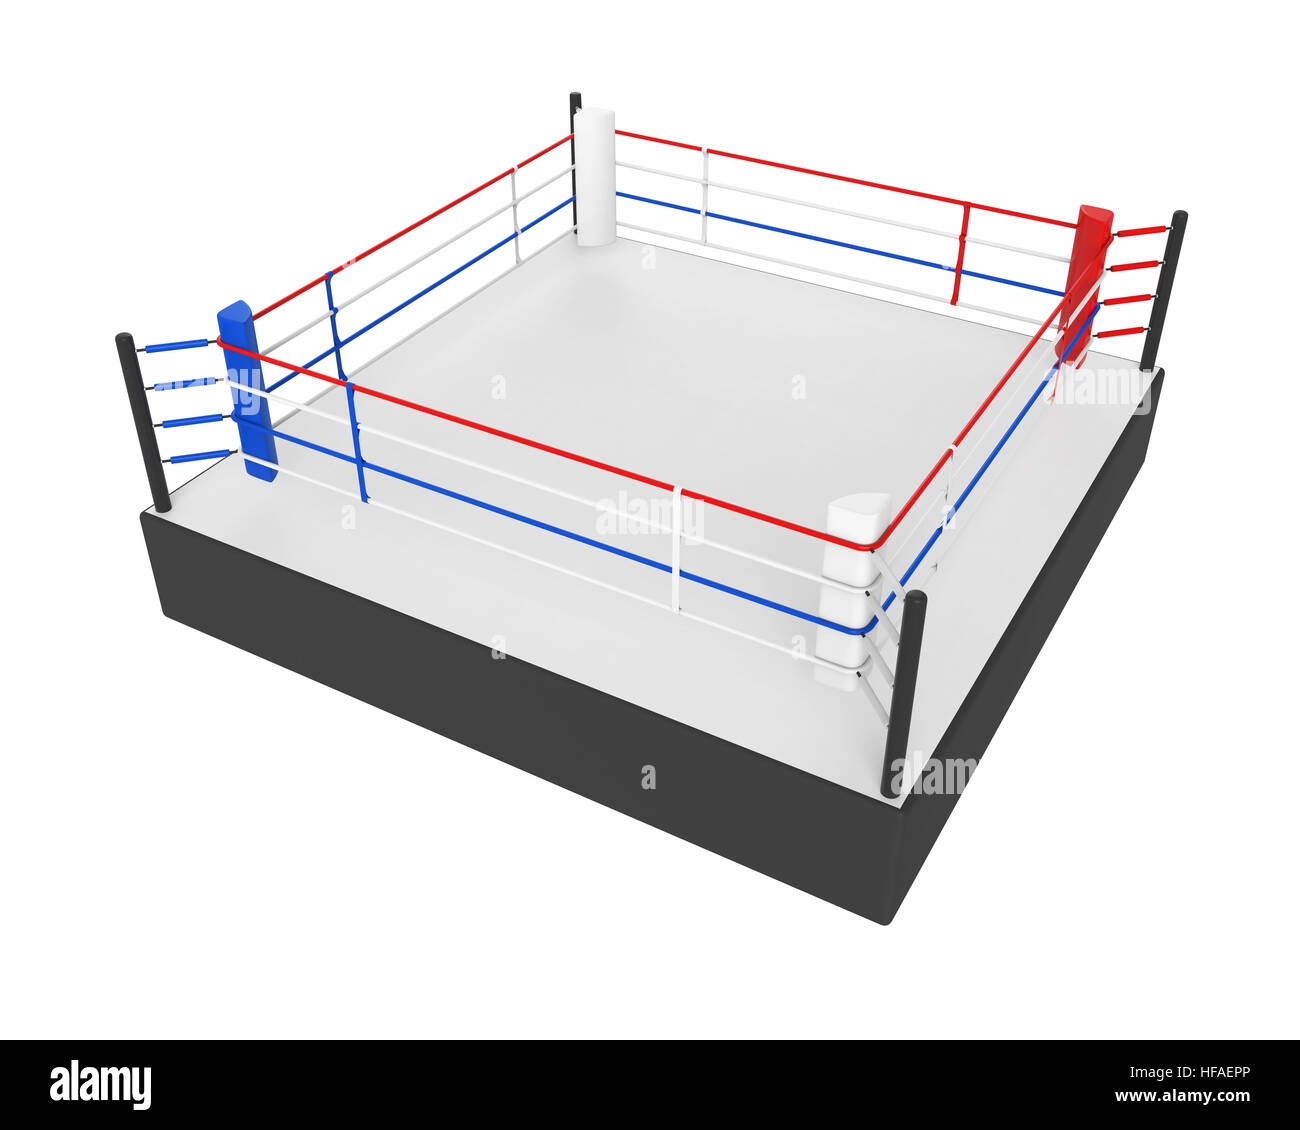 Boxing ring isolated stock photo 129923550 alamy boxing ring isolated ccuart Images